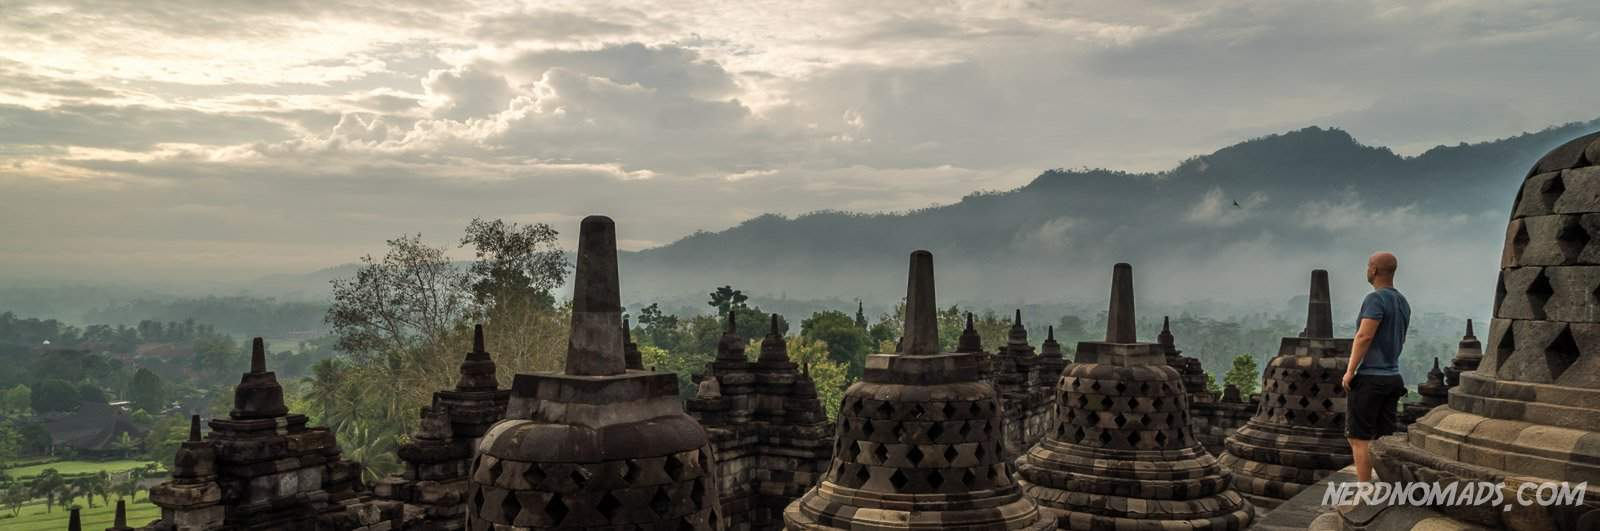 Dawn at Borobudur